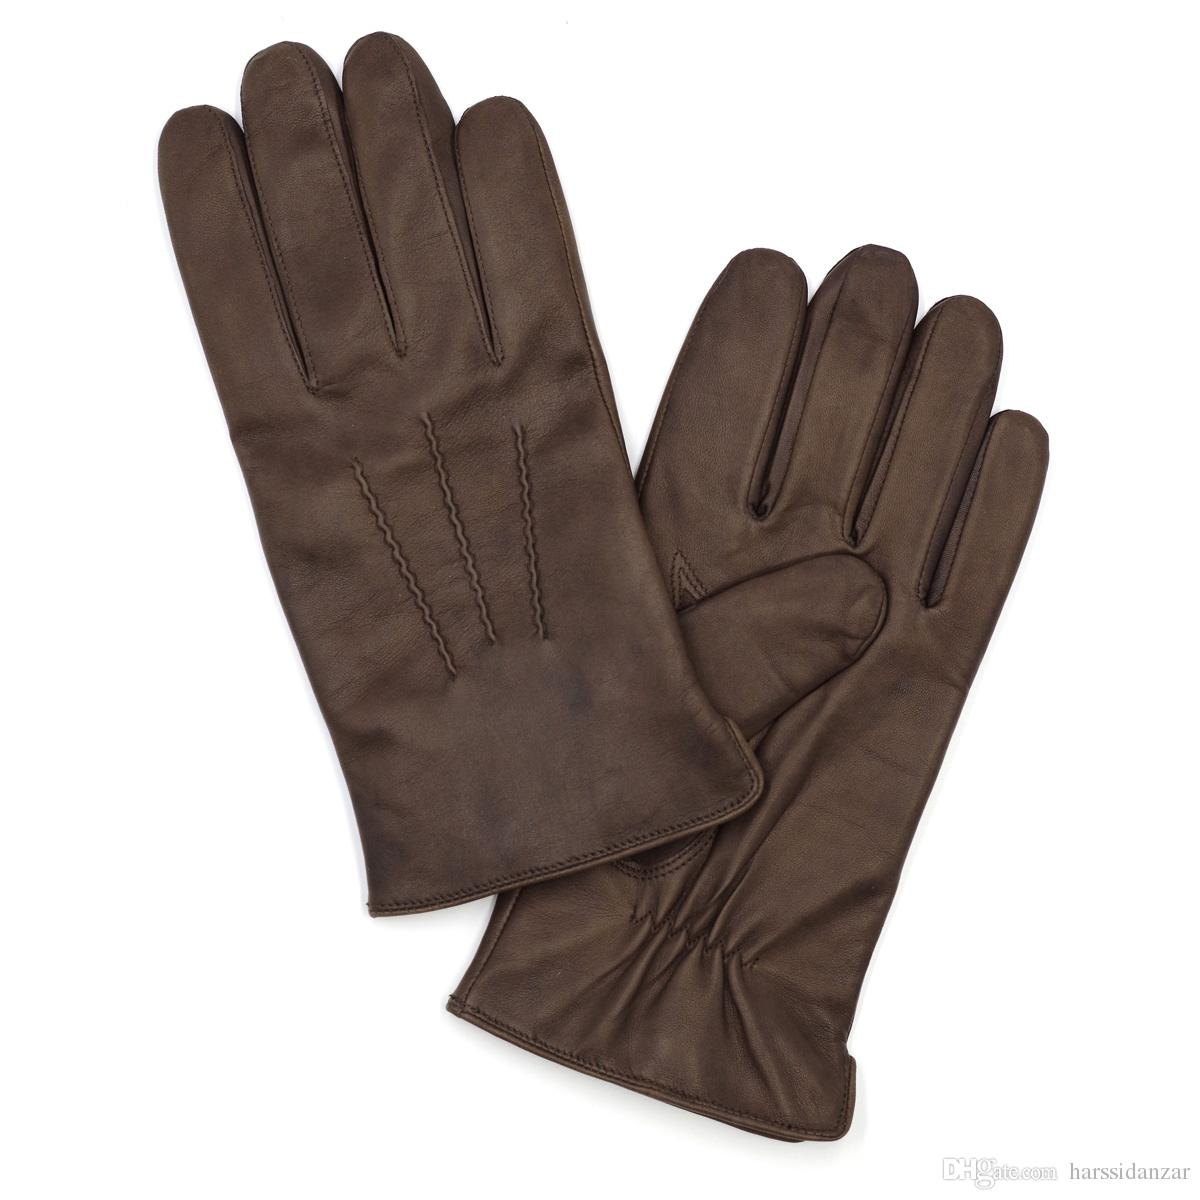 107fb9e9dfa52 Harssidanzar Mens Luxury Italian Sheepskin Leather Gloves Vintage Finished Wool  Lined (Brown color)